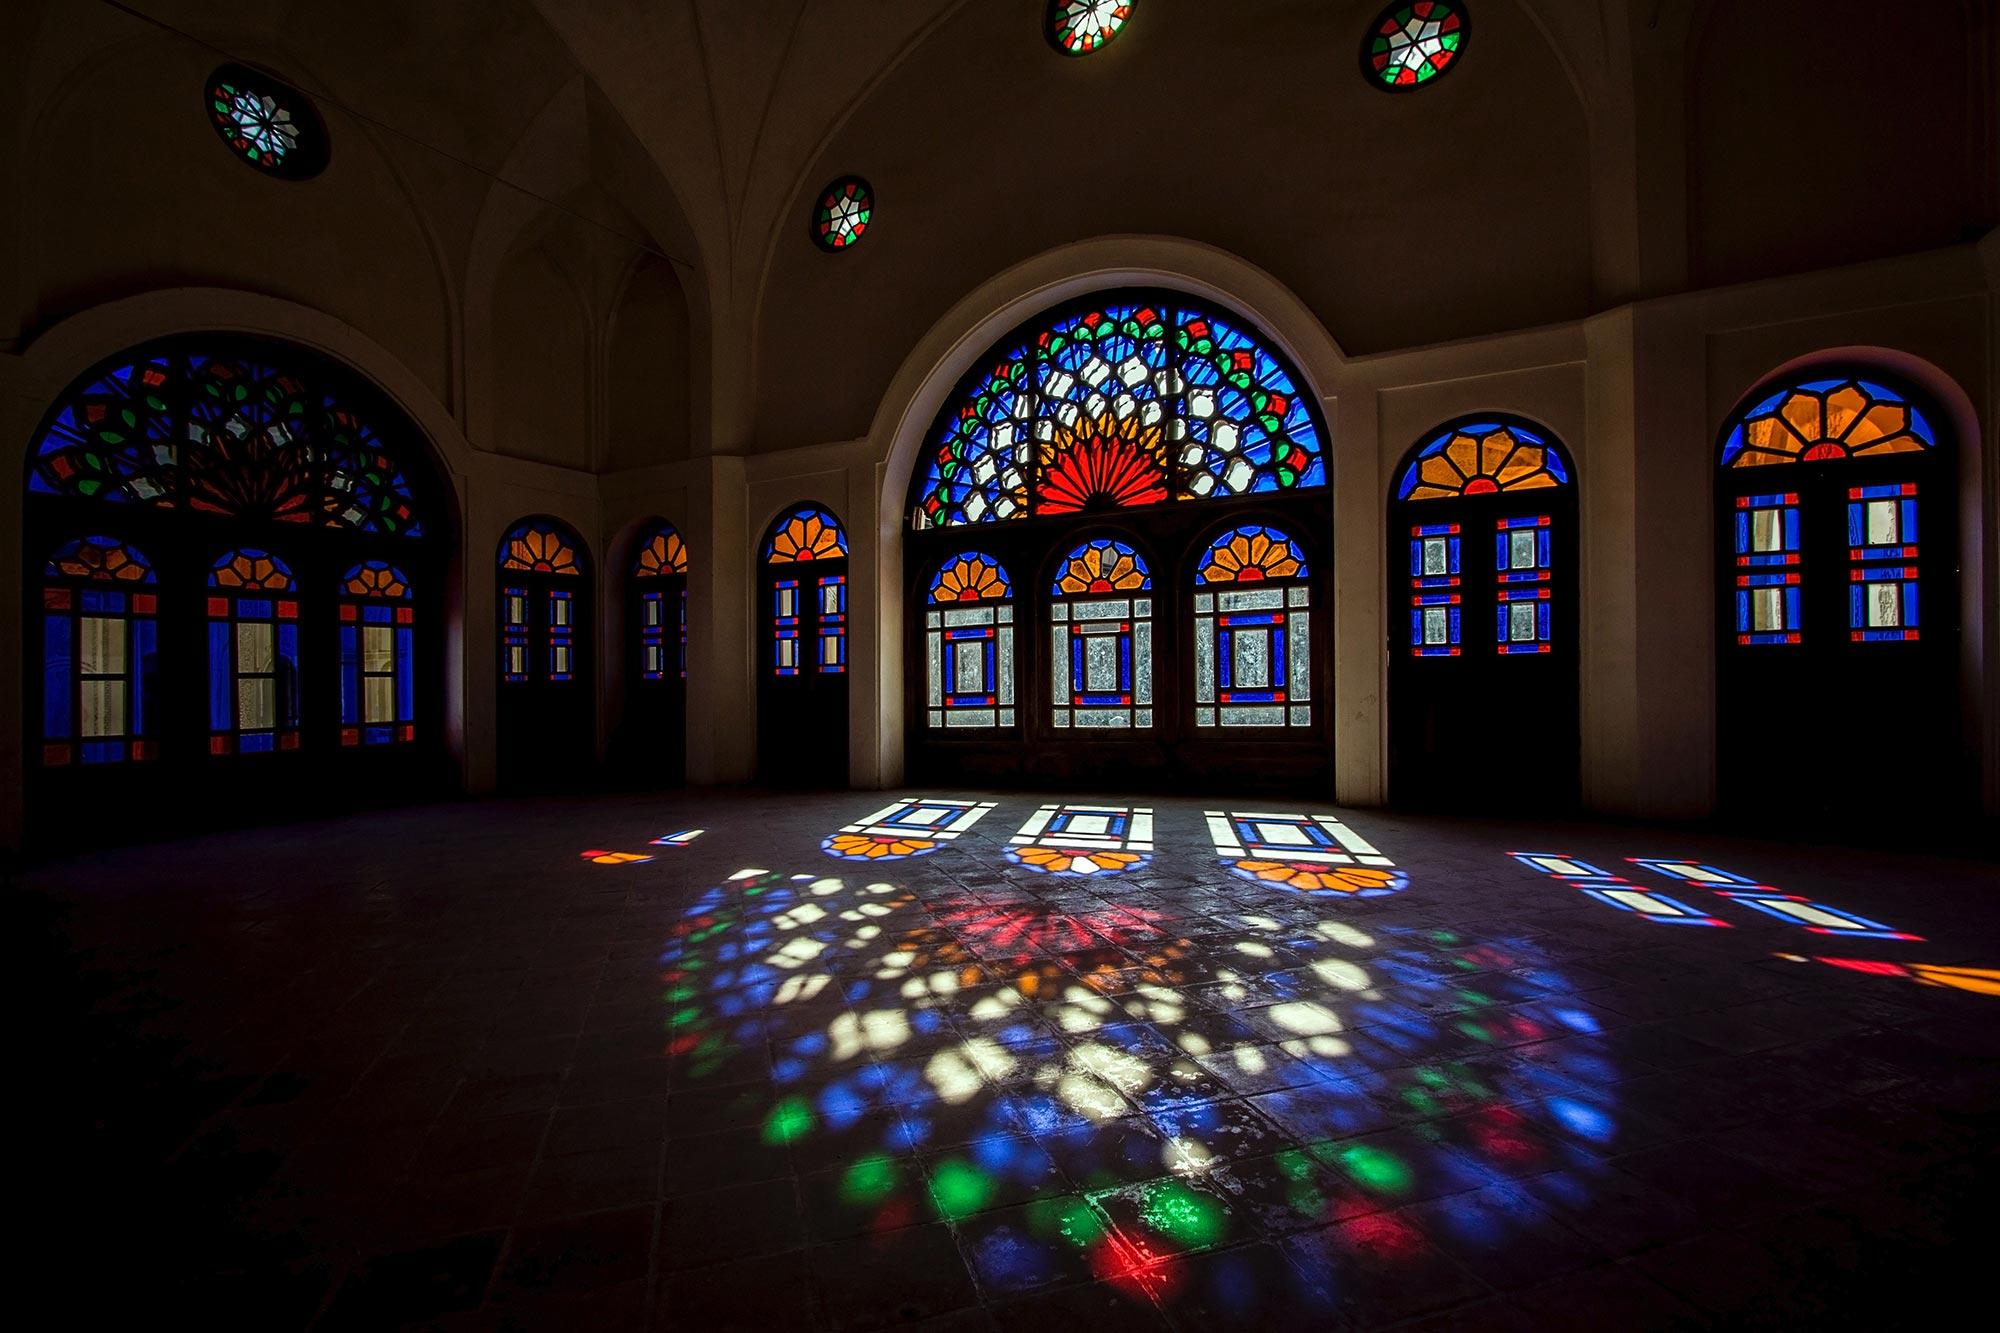 Iranian Art - Hotel one click home page image